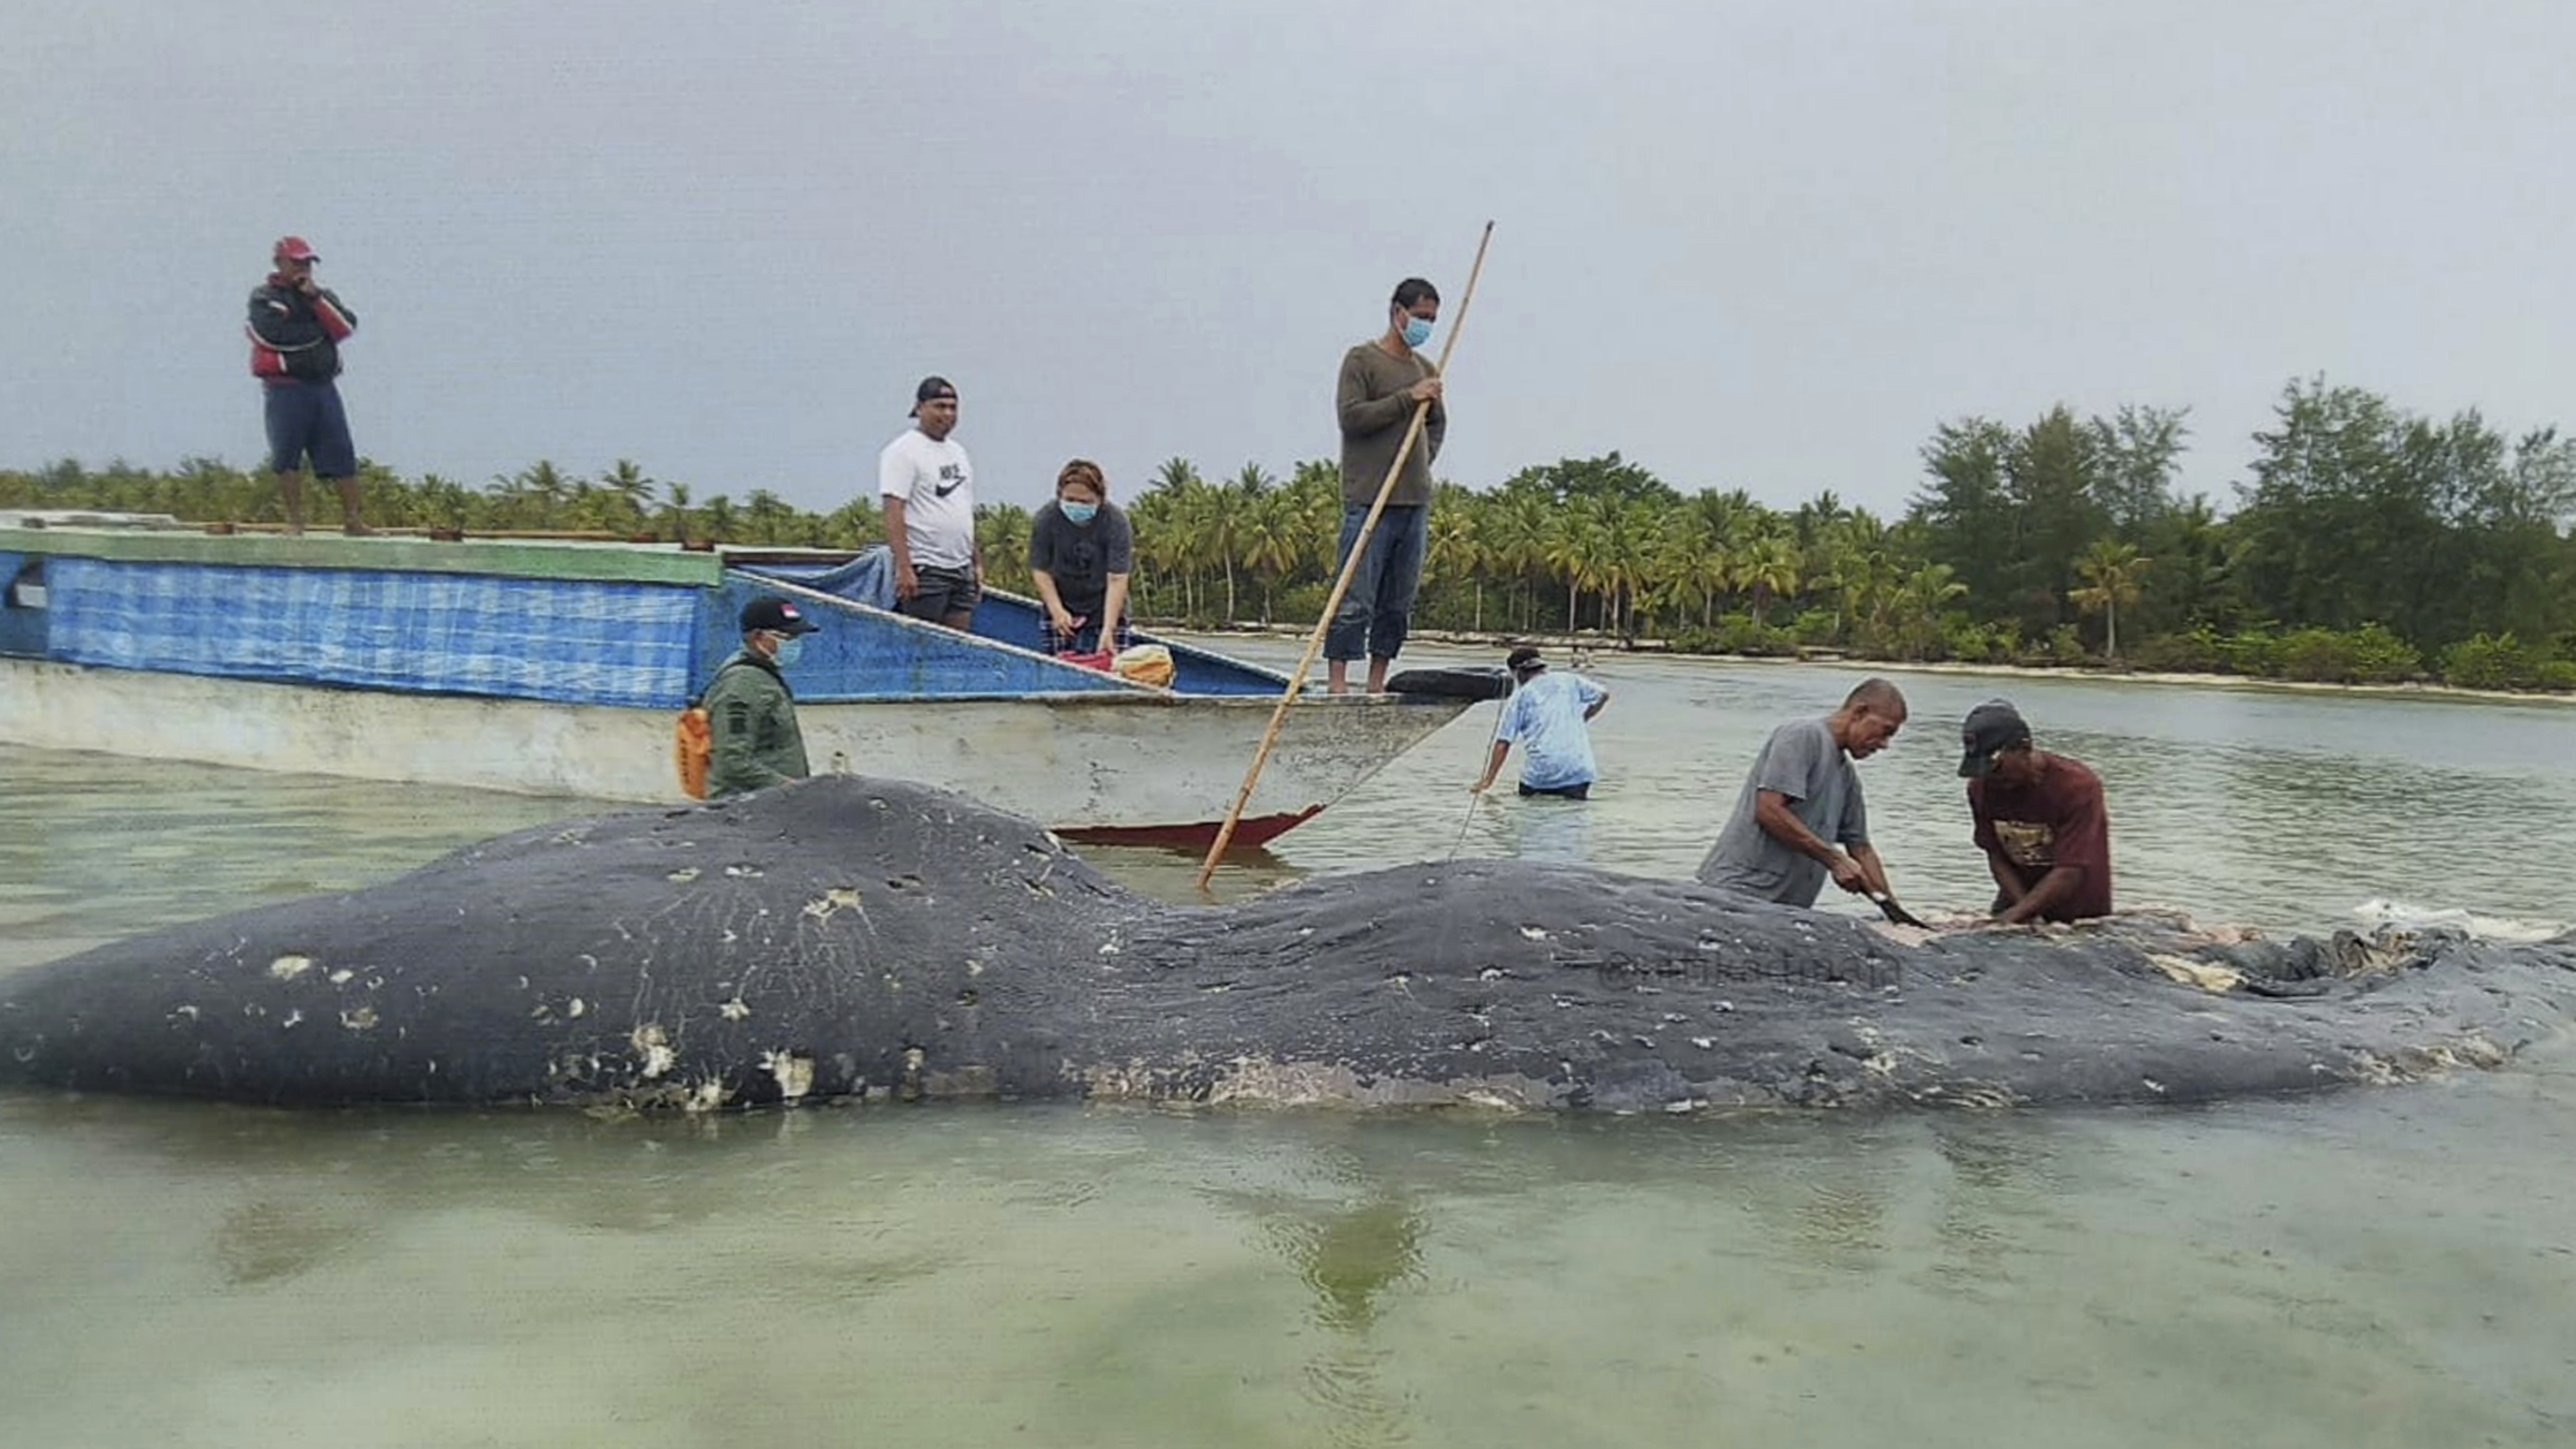 npr.org - Merrit Kennedy - Researchers Find 115 Plastic Cups In Dead Whale's Stomach